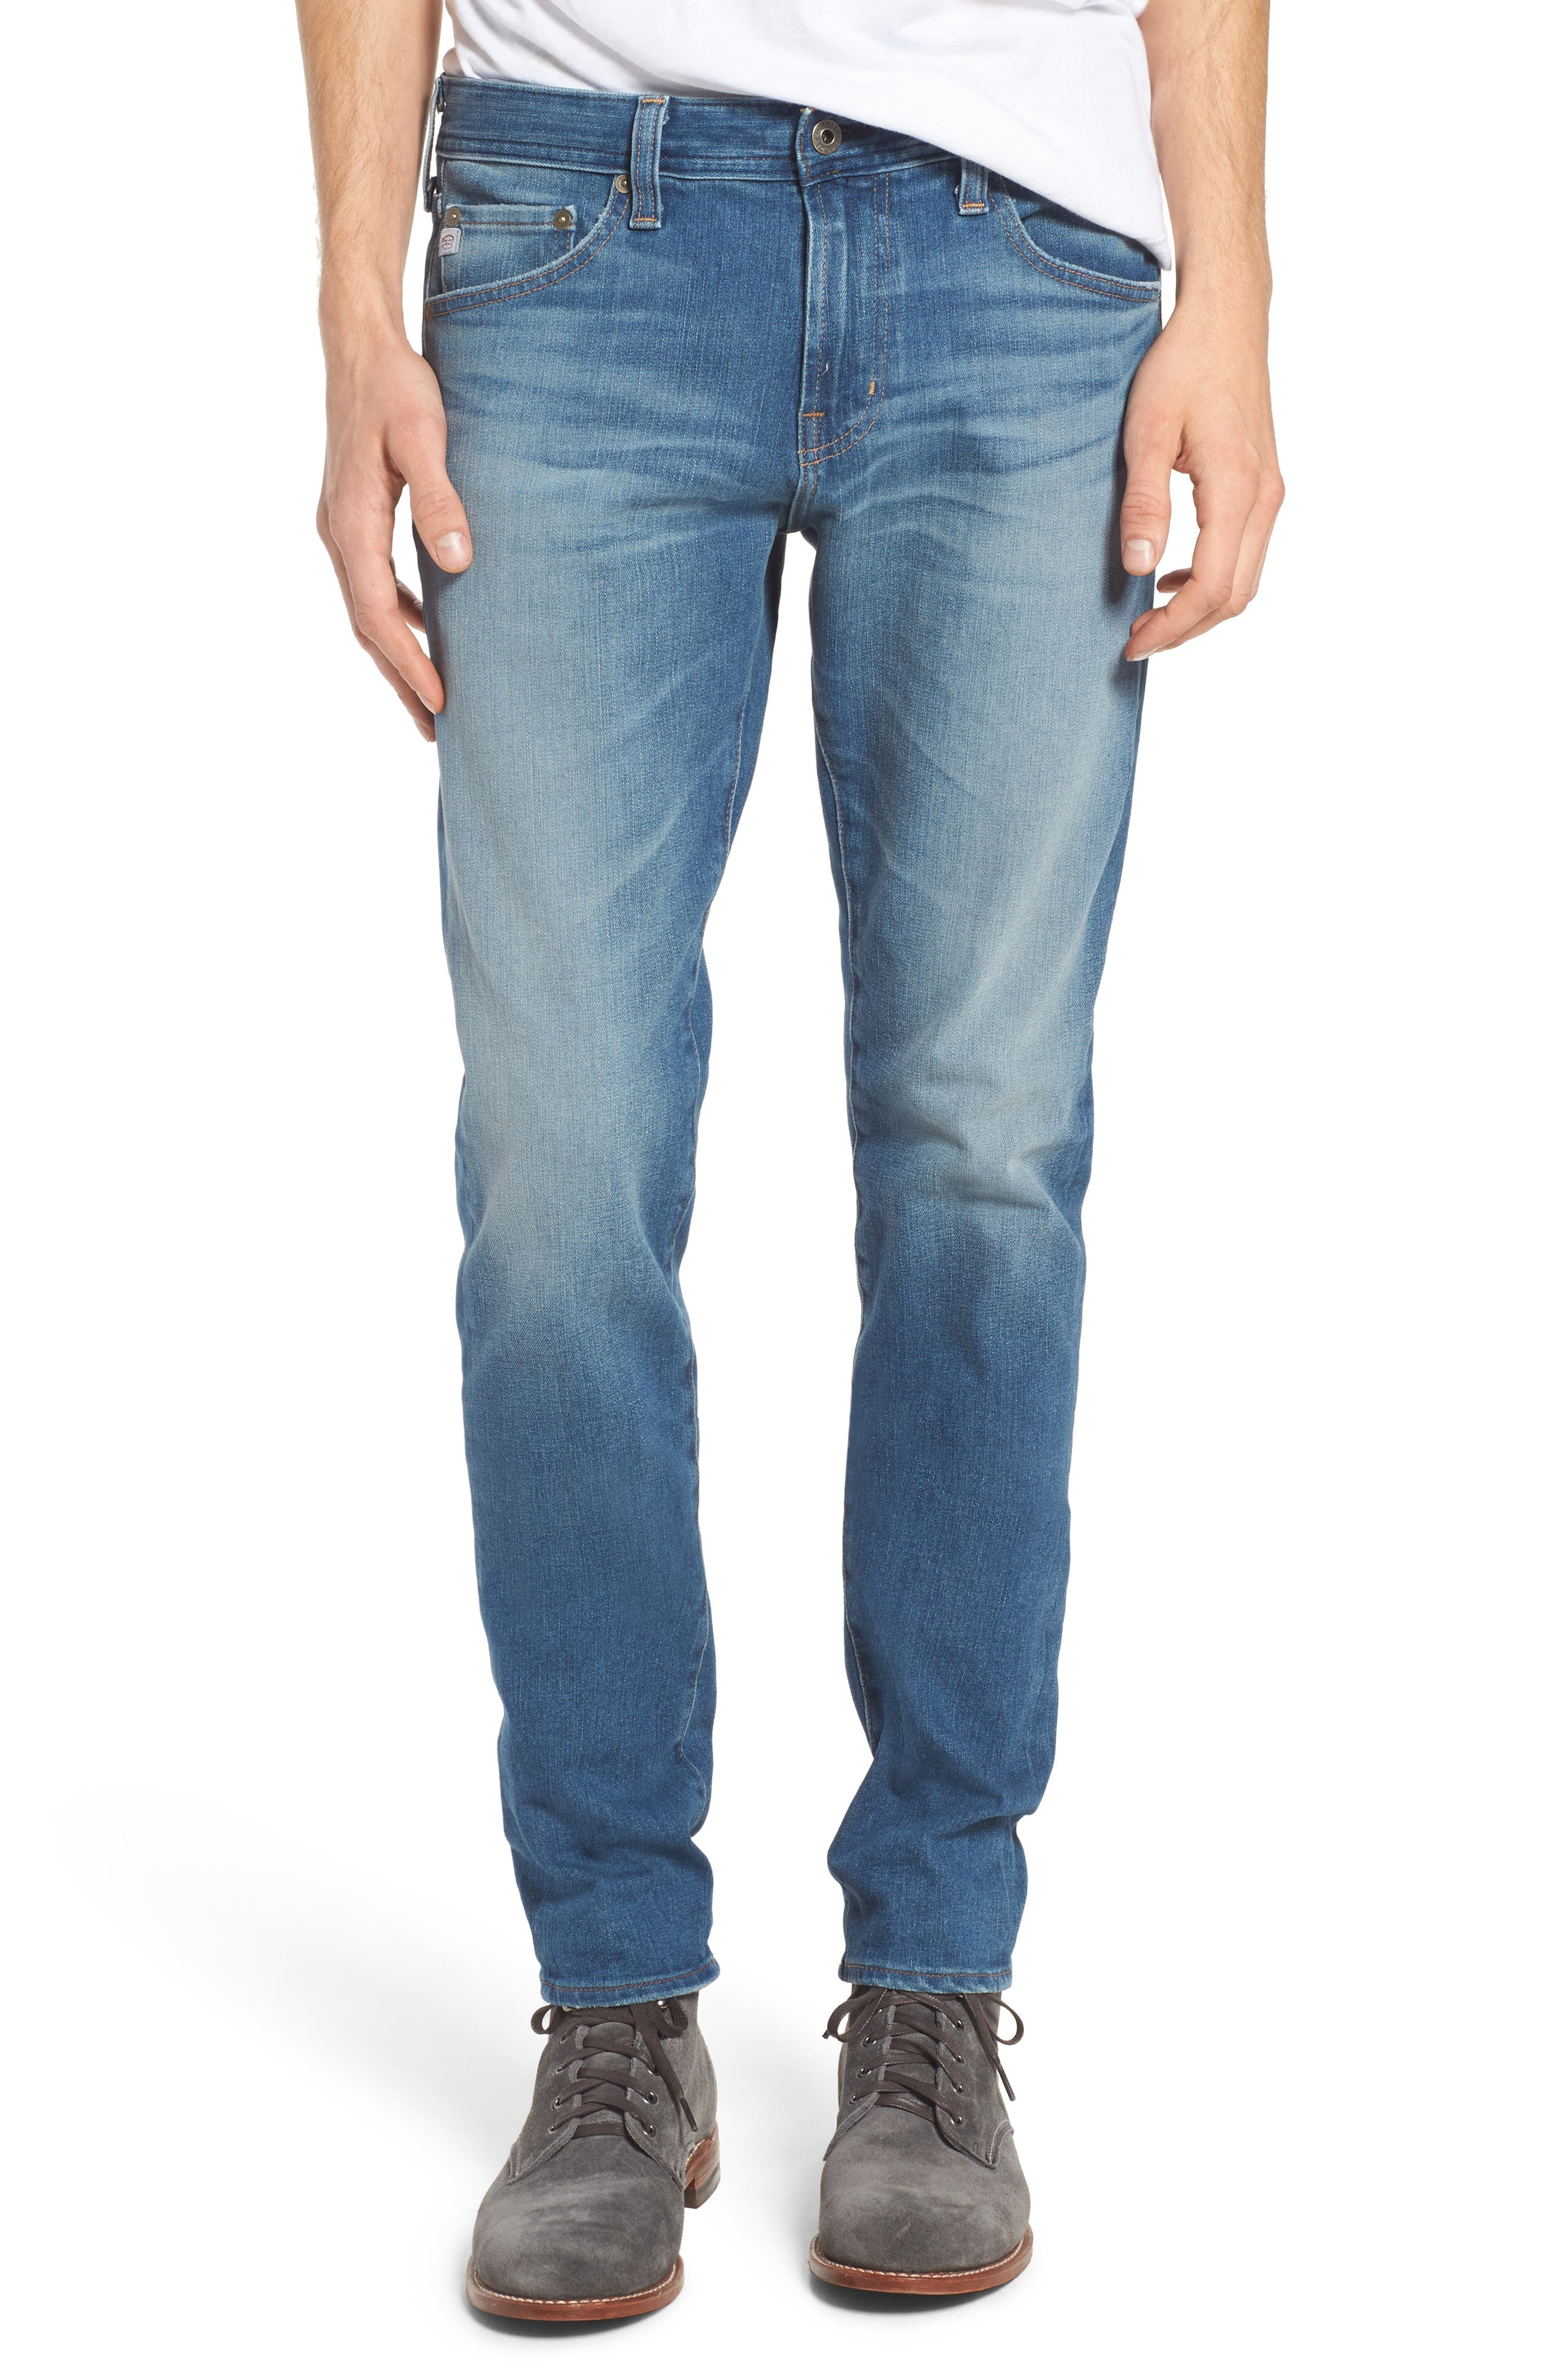 Dylan Slim Skinny Fit Jeans,                         Main,                         color, Audition